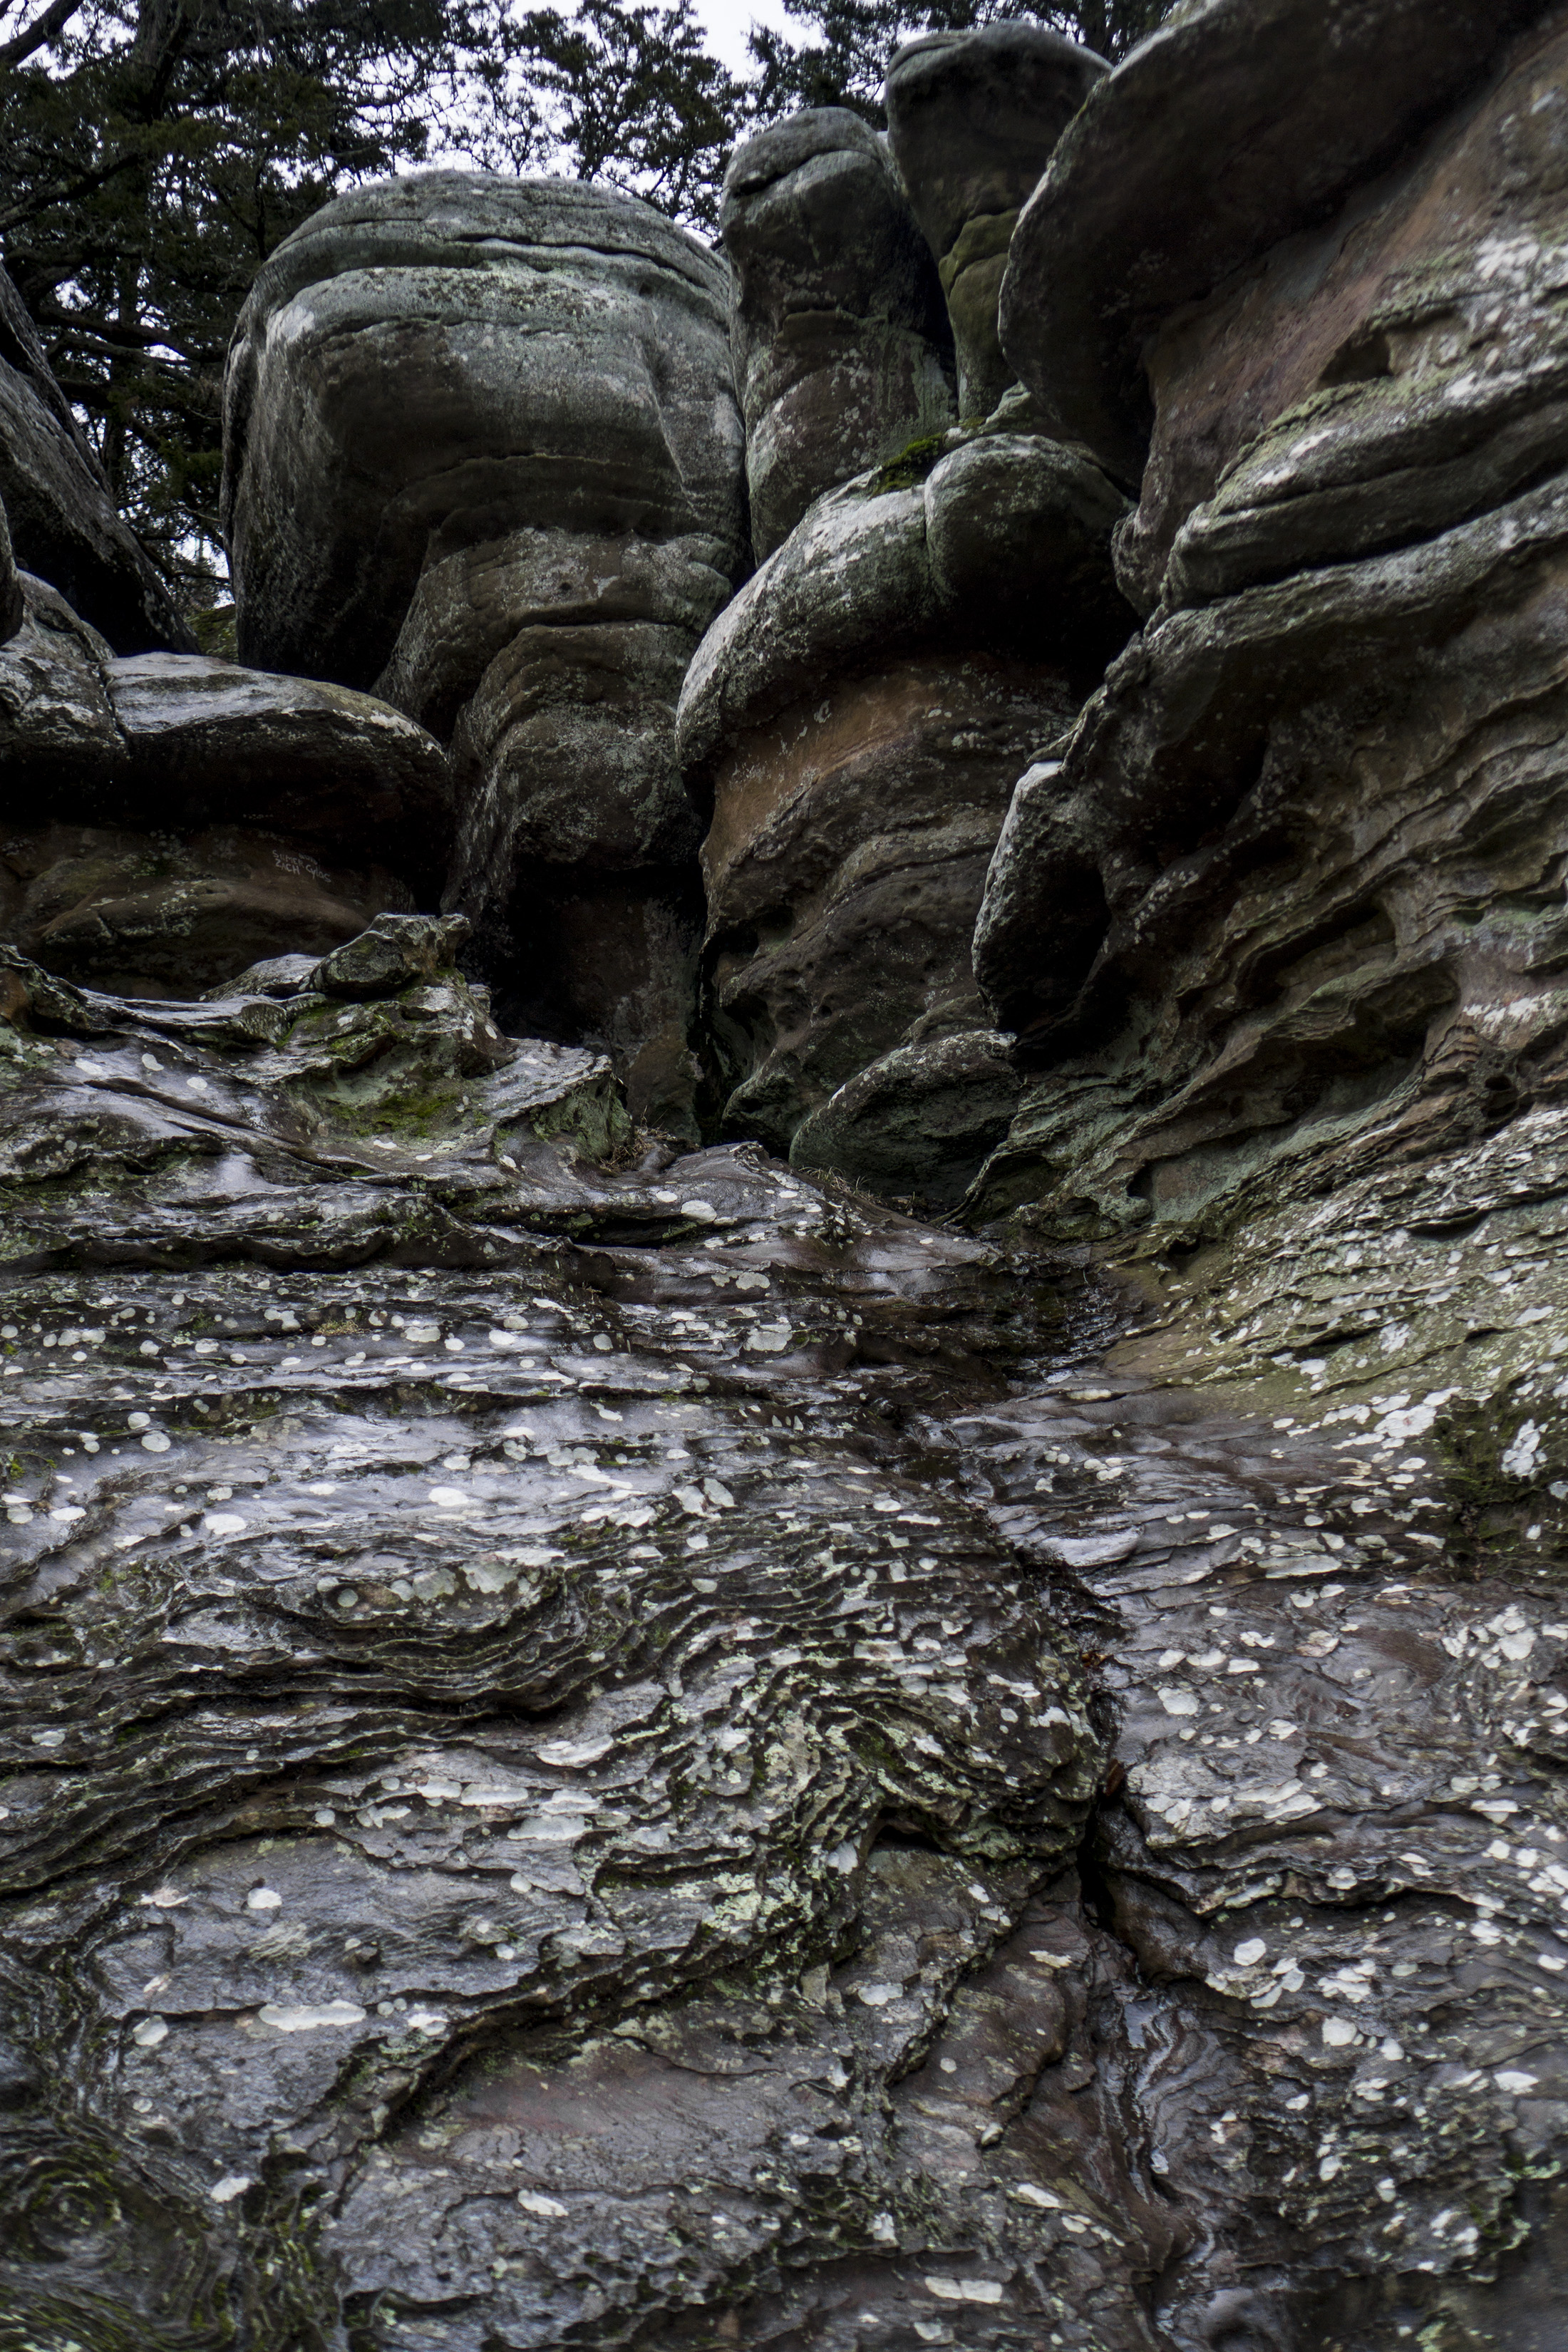 Liesegang bands on rock formation, Garden of the Gods, Shawnee National Forest, IL / Darker than Green